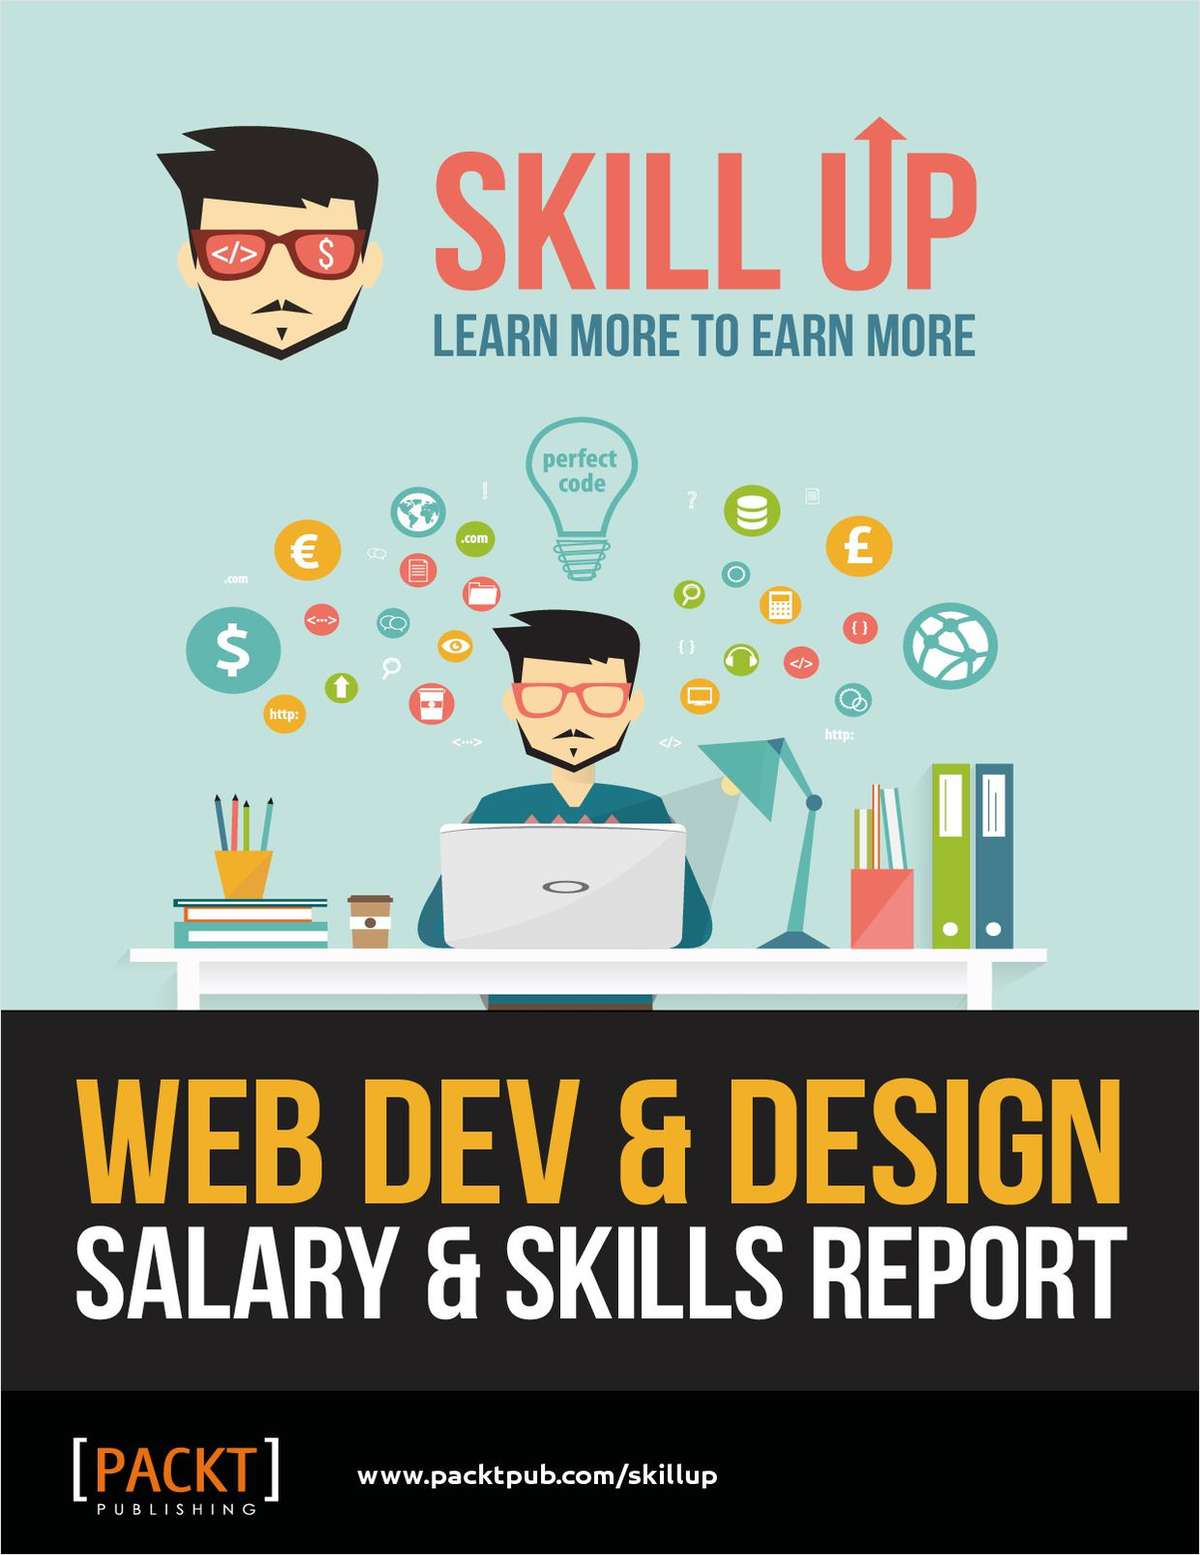 Web Development & Design - Salary & Skills Report